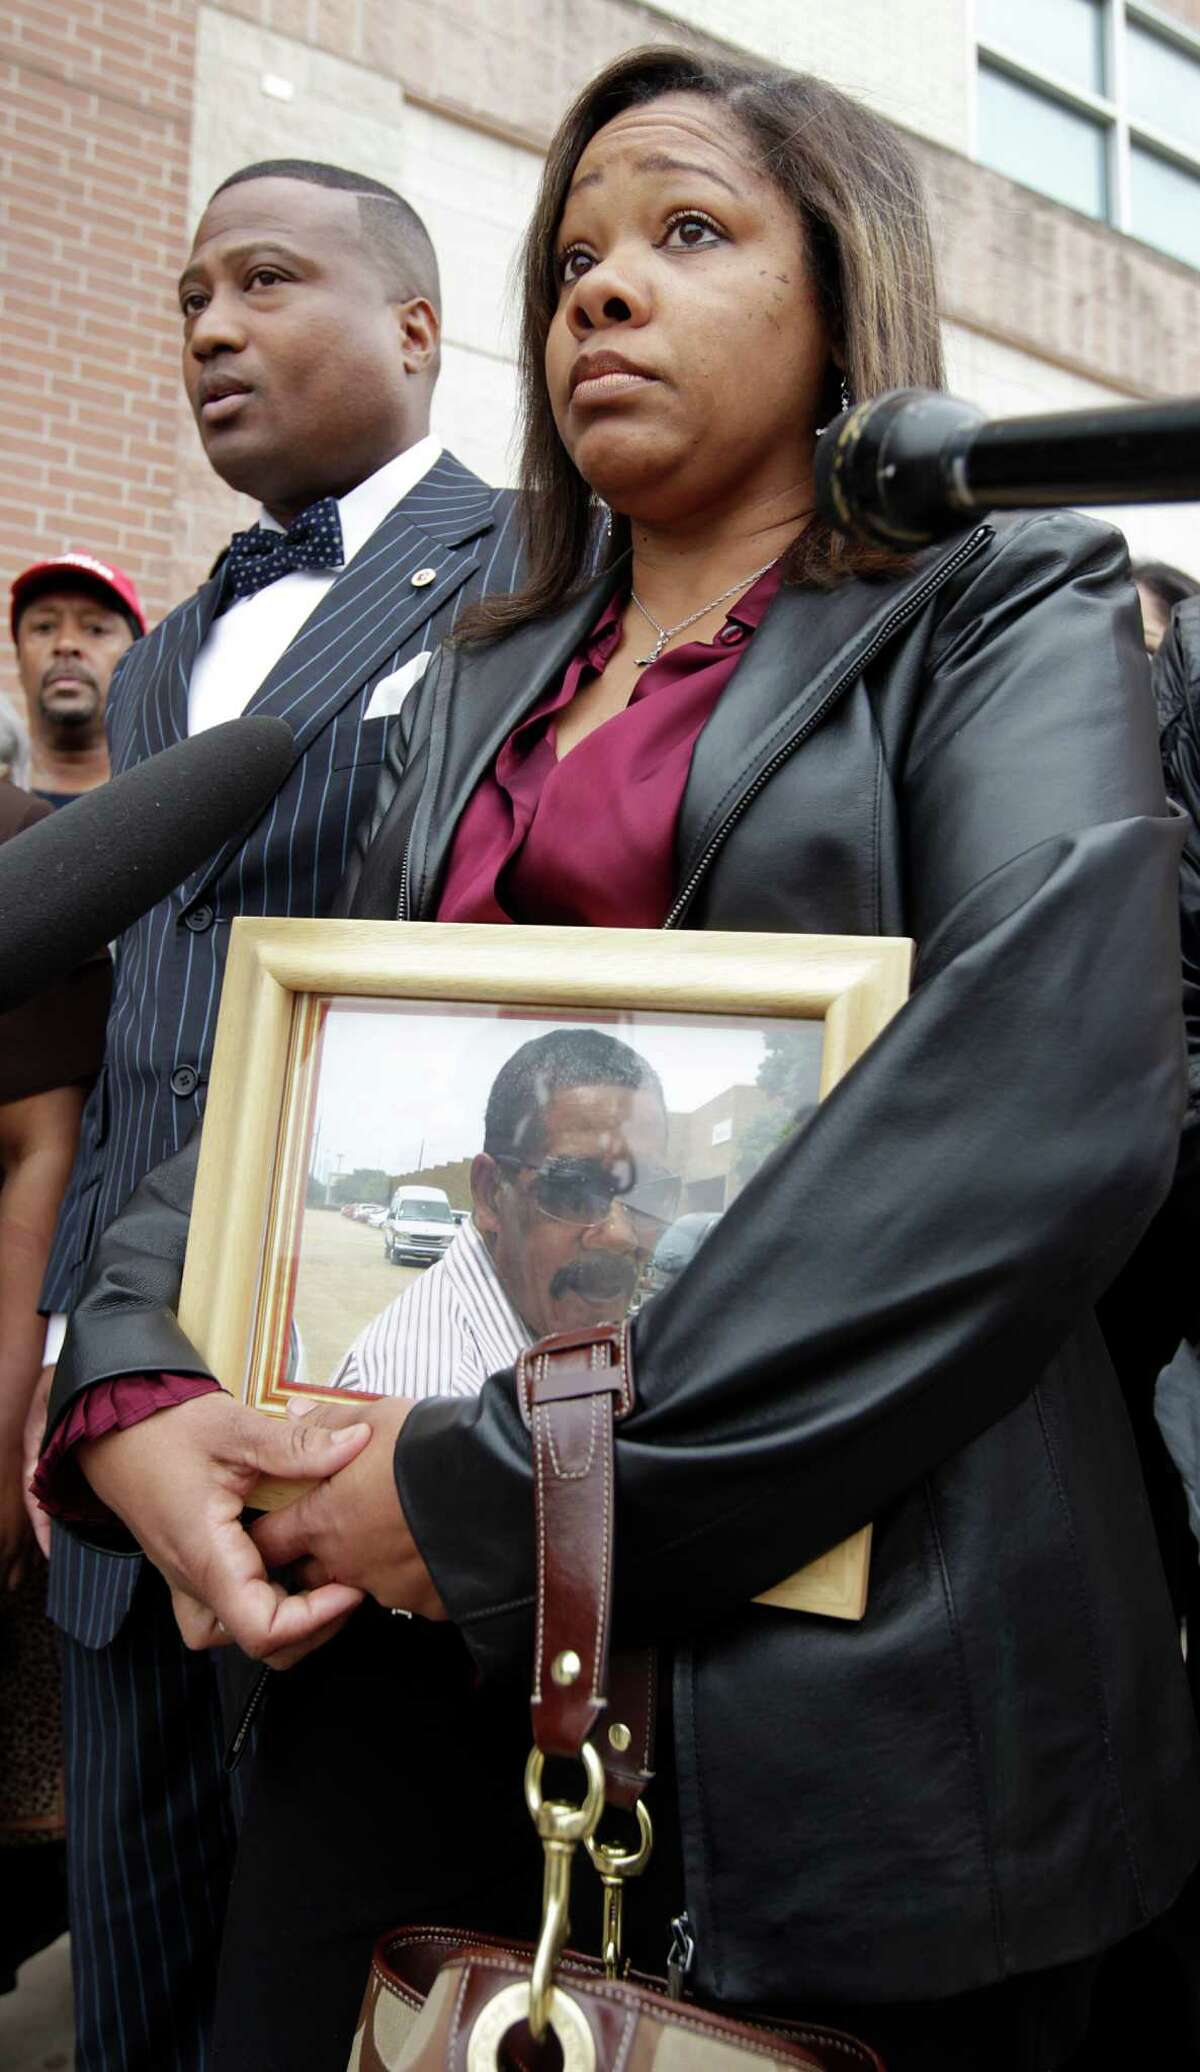 Evangeline Hicks Campbell holds a photo of her father Norman Ford Hicks, 72, during Quanell X's press conference in front of the Harris County Sheriff's jail at 1200 Baker Street, Monday, Jan. 31, 2011, in Houston, as he speaks to the media about Norman Ford Hicks, 72, who died from after an altercation, January 16, 2011, while in jail at the Baker Street location. The family is asking for information on the circumstances surrounding the altercation. ( Karen Warren / Houston Chronicle )